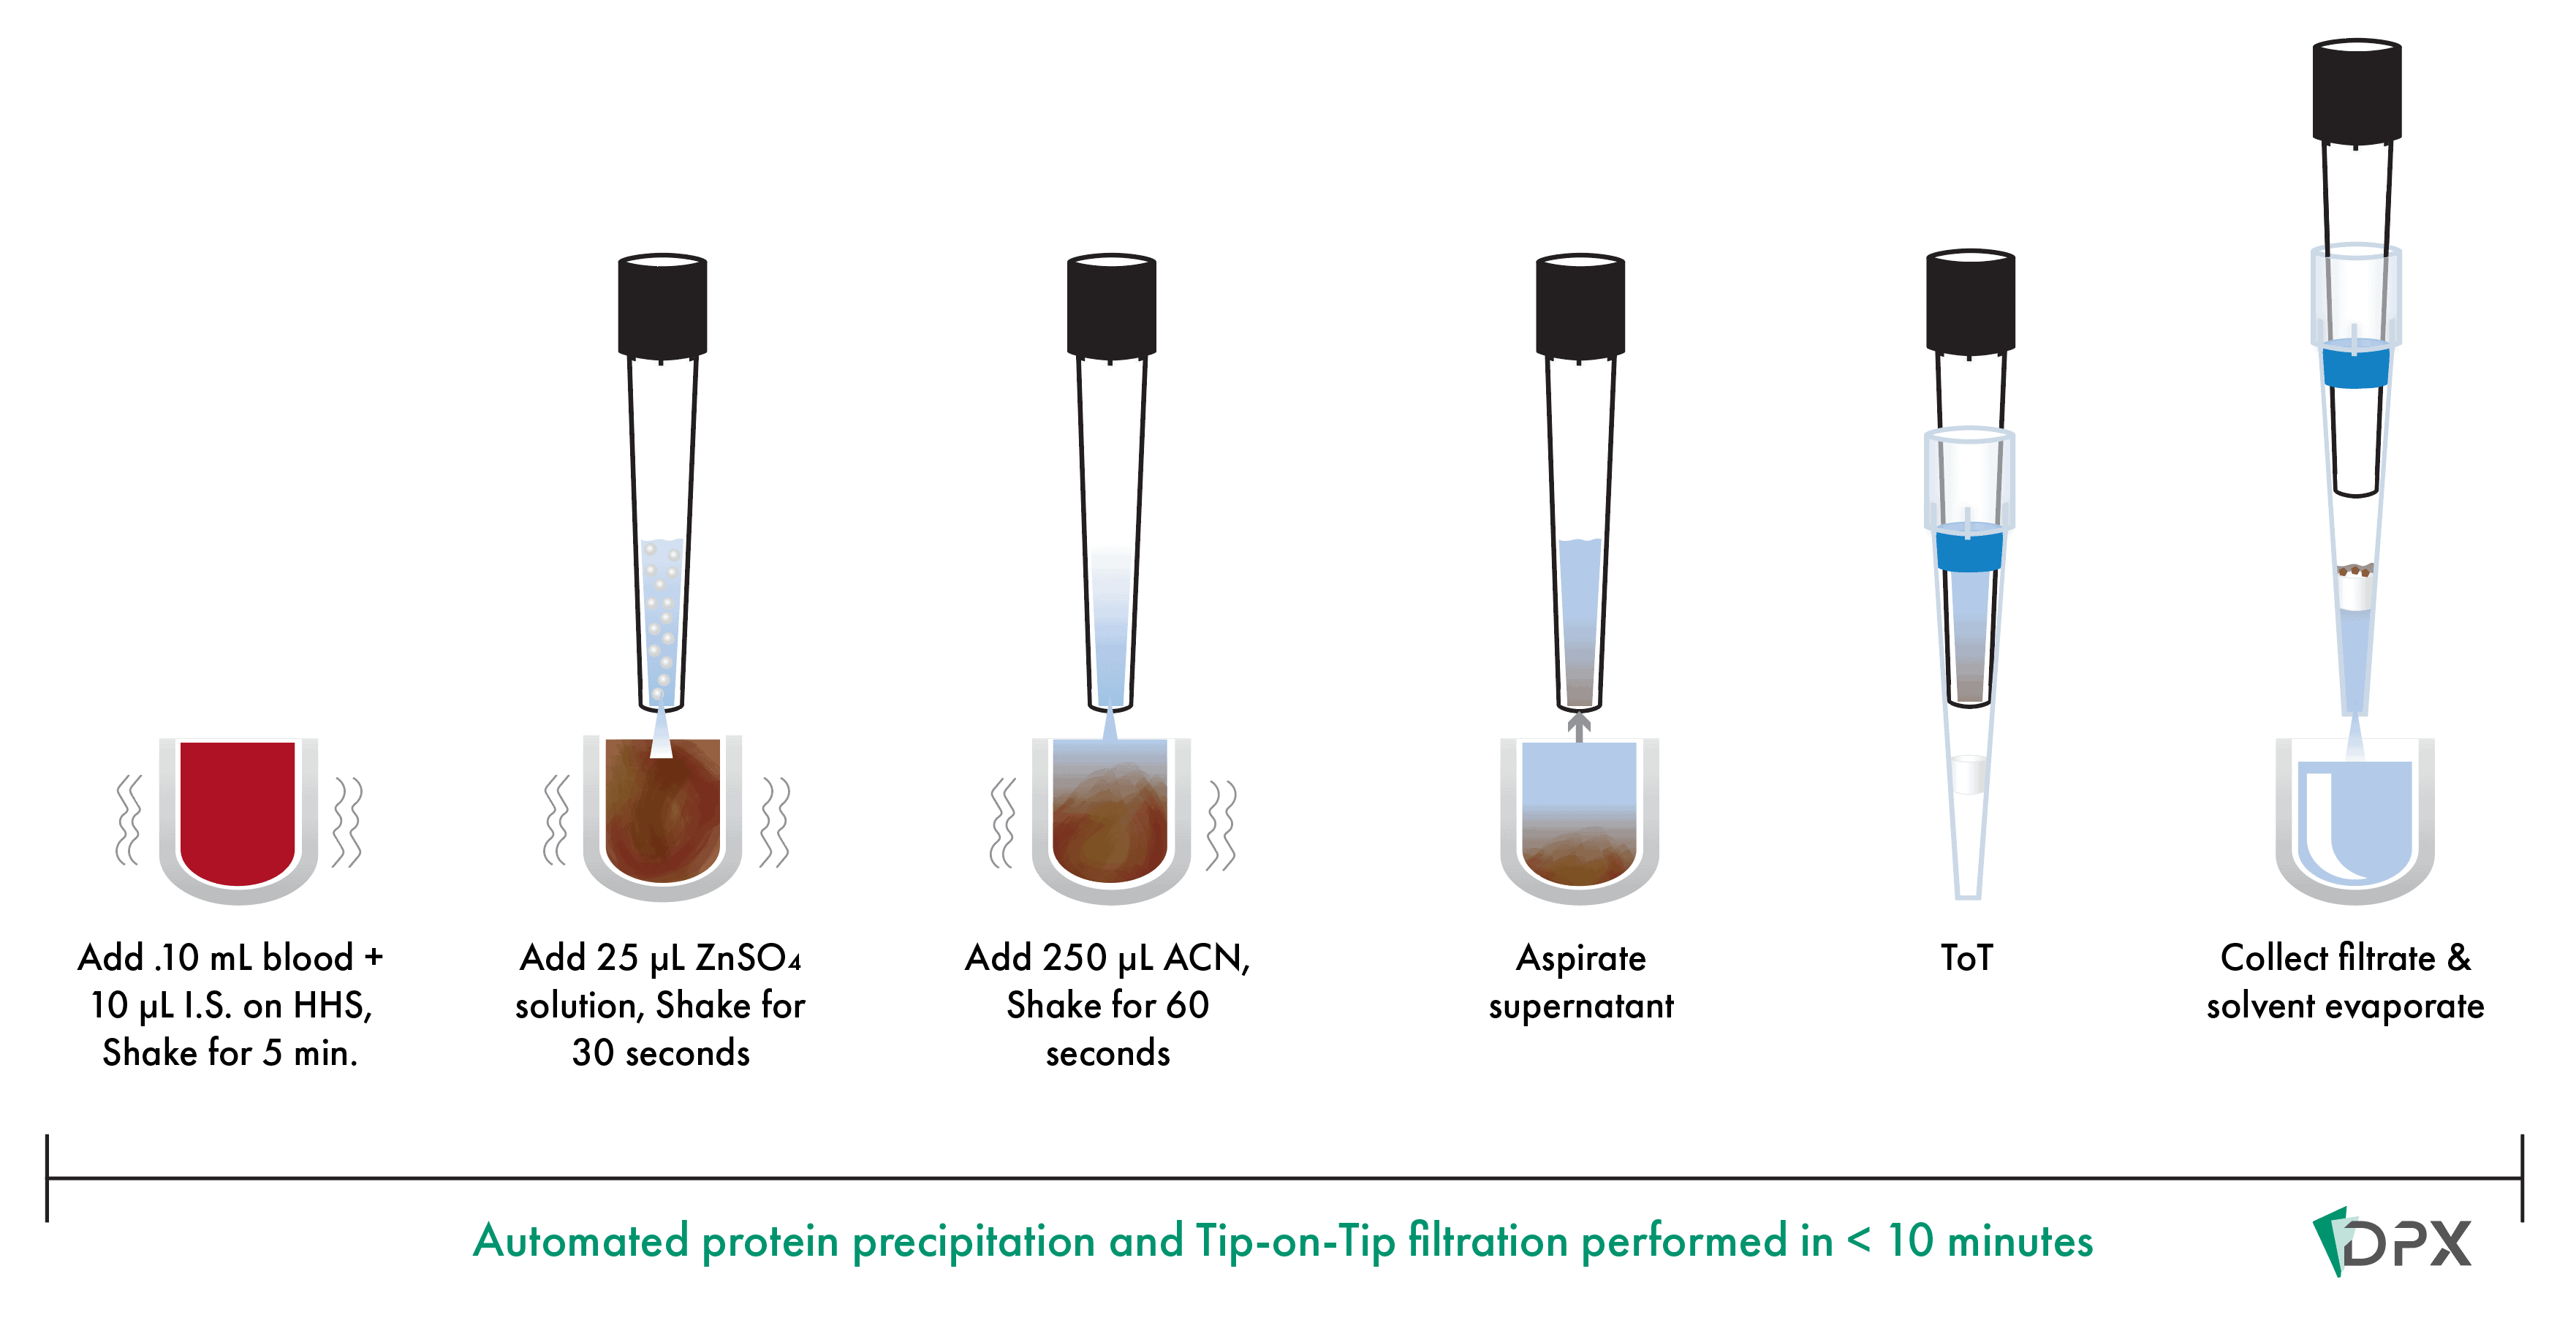 automated protein precipitation and filtration for analysis of drugs in whole blood